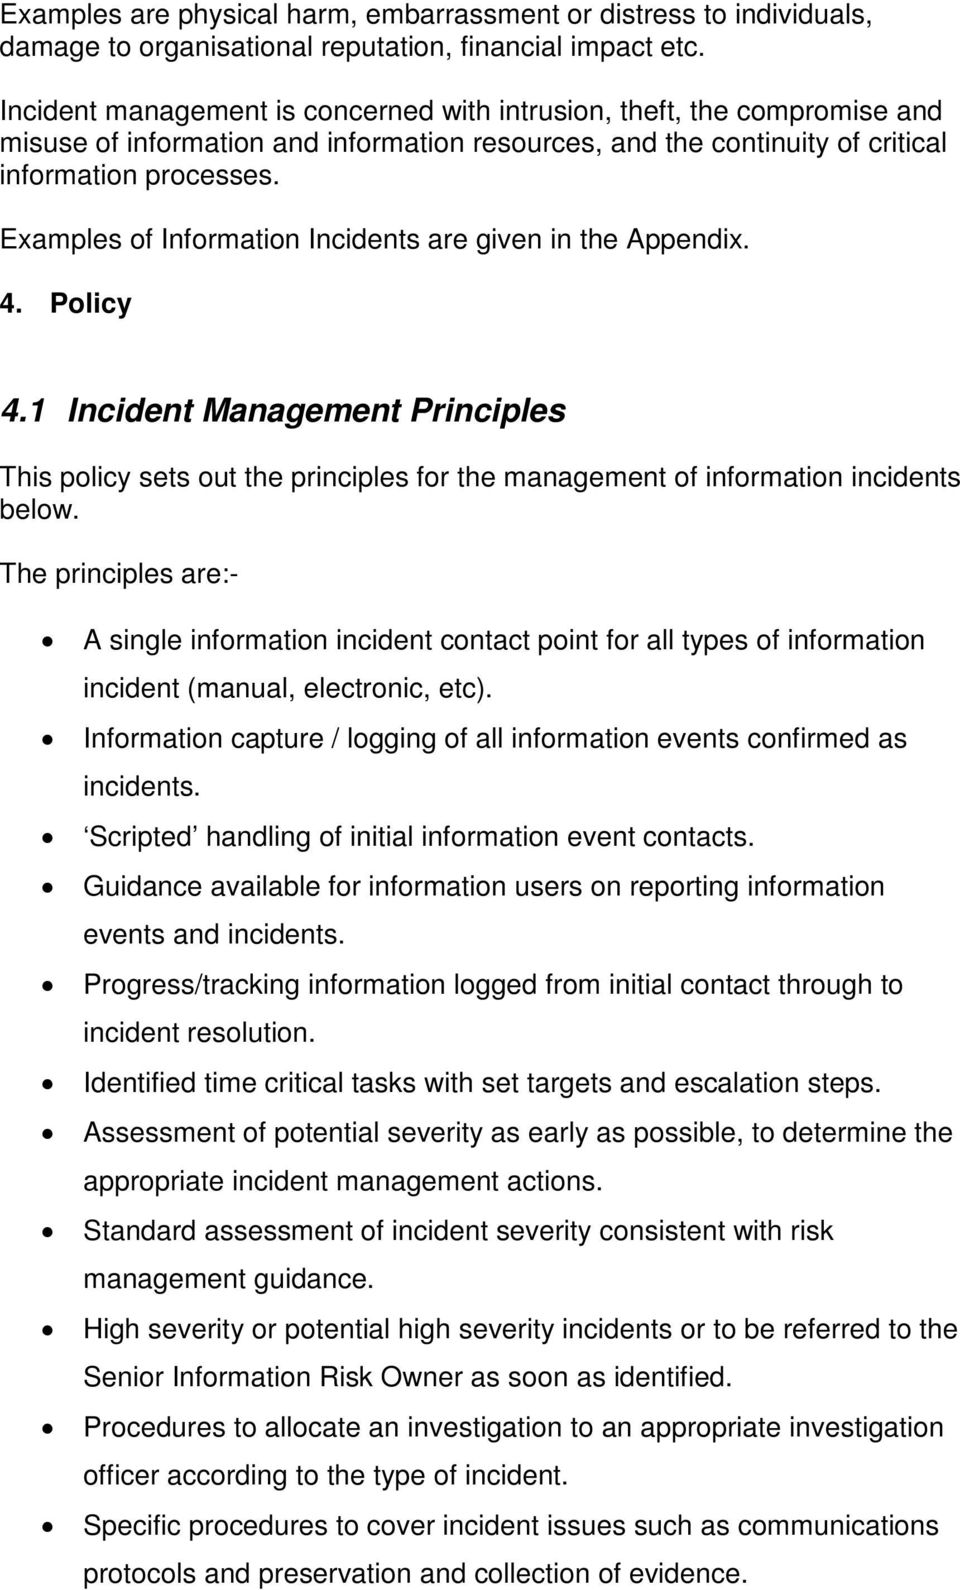 Examples of Information Incidents are given in the Appendix. 4. Policy 4.1 Incident Management Principles This policy sets out the principles for the management of information incidents below.